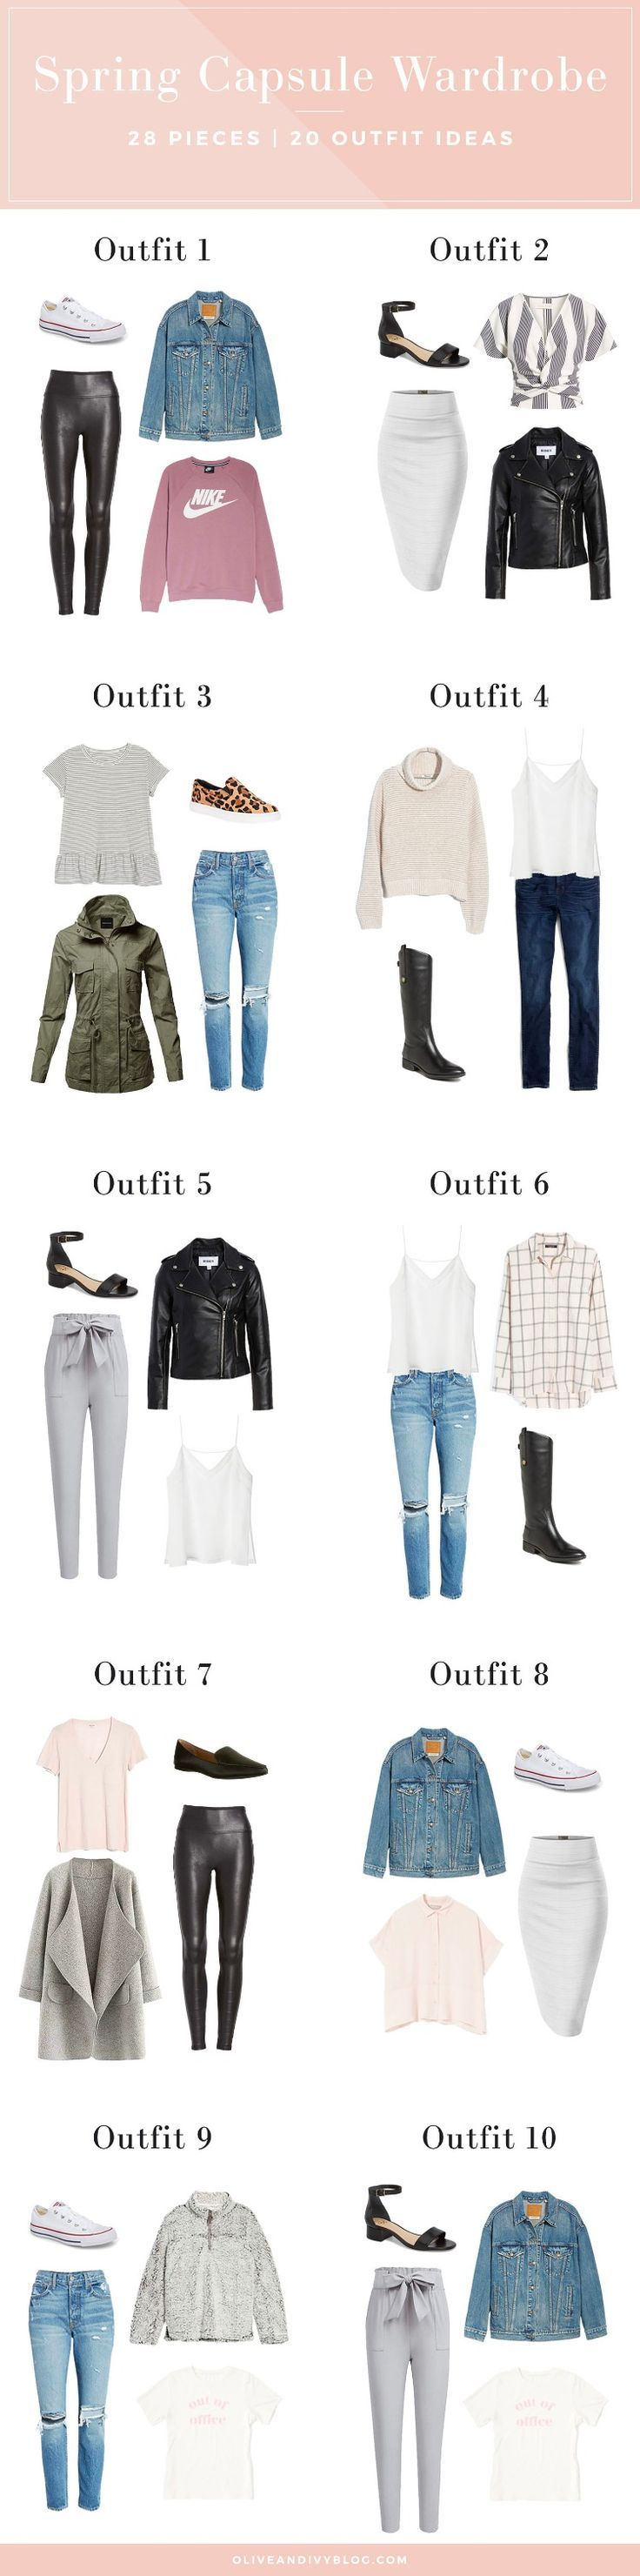 CLICK to view the full casual chic spring capsule wardrobe and 10 more outfit ideas!